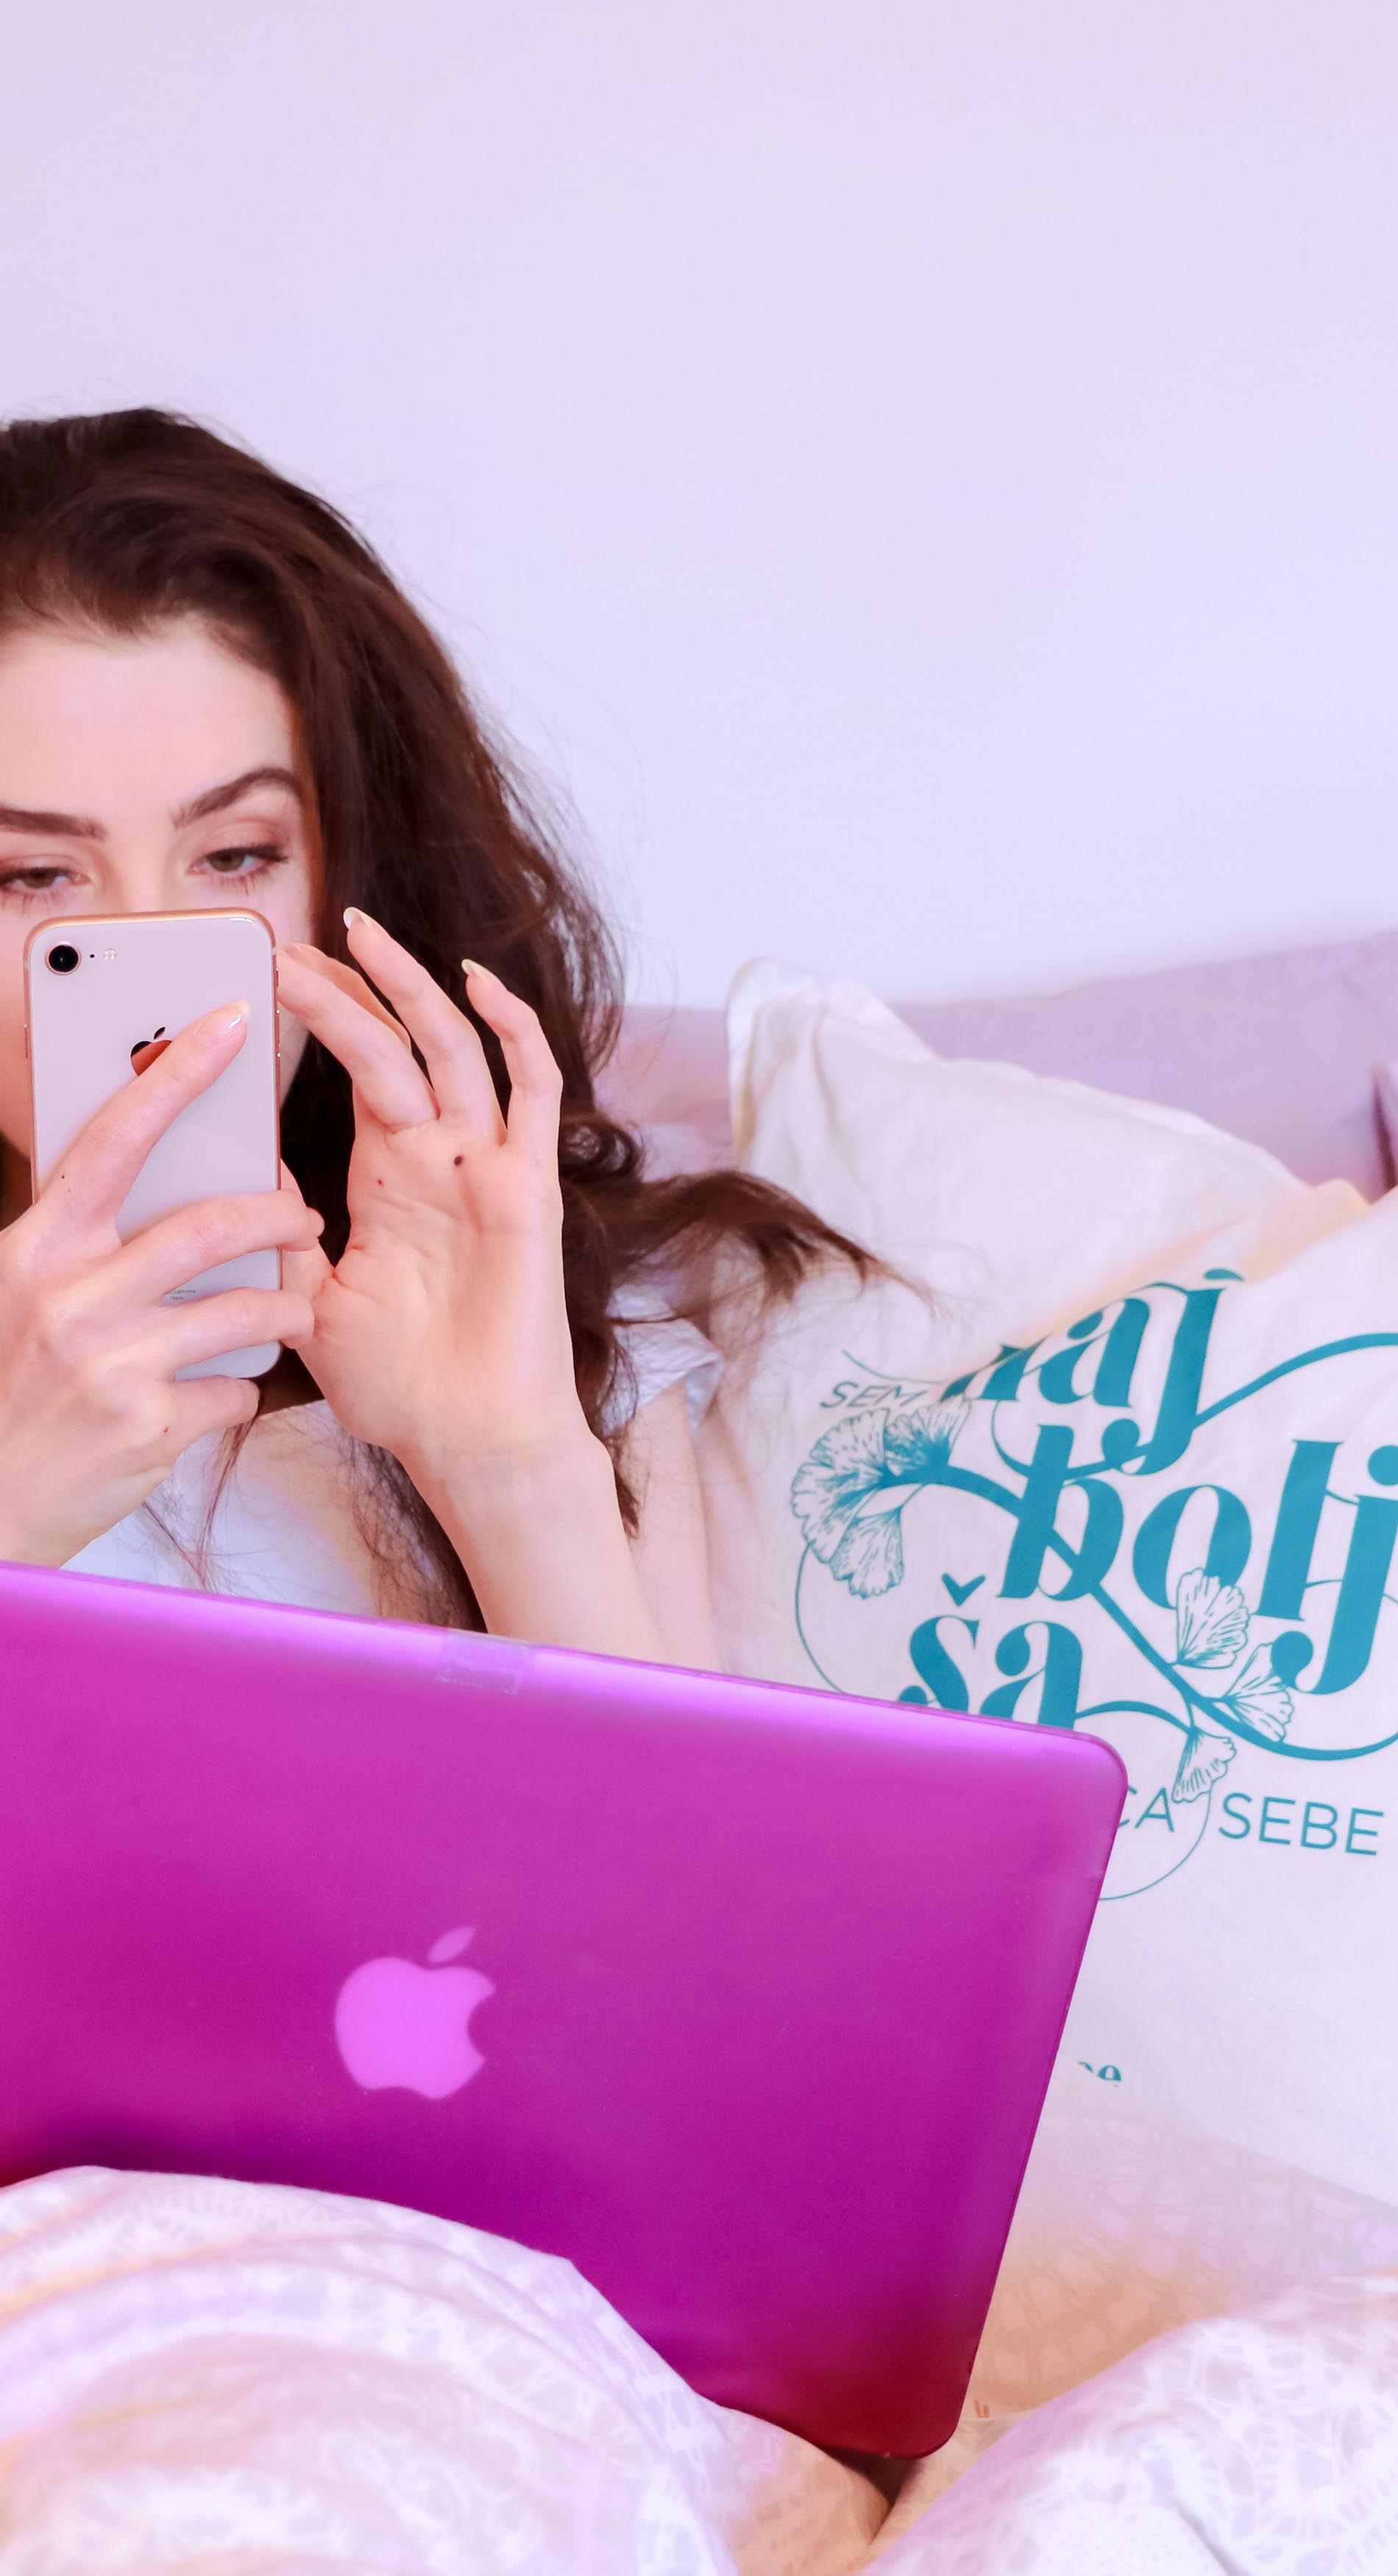 Fashion Blogger Veronika Lipar of Brunette from Wall Street checking her iPhone while Netflix and chilling on her pink MacBook while sitting in the pink bed surrounded by pink pillows